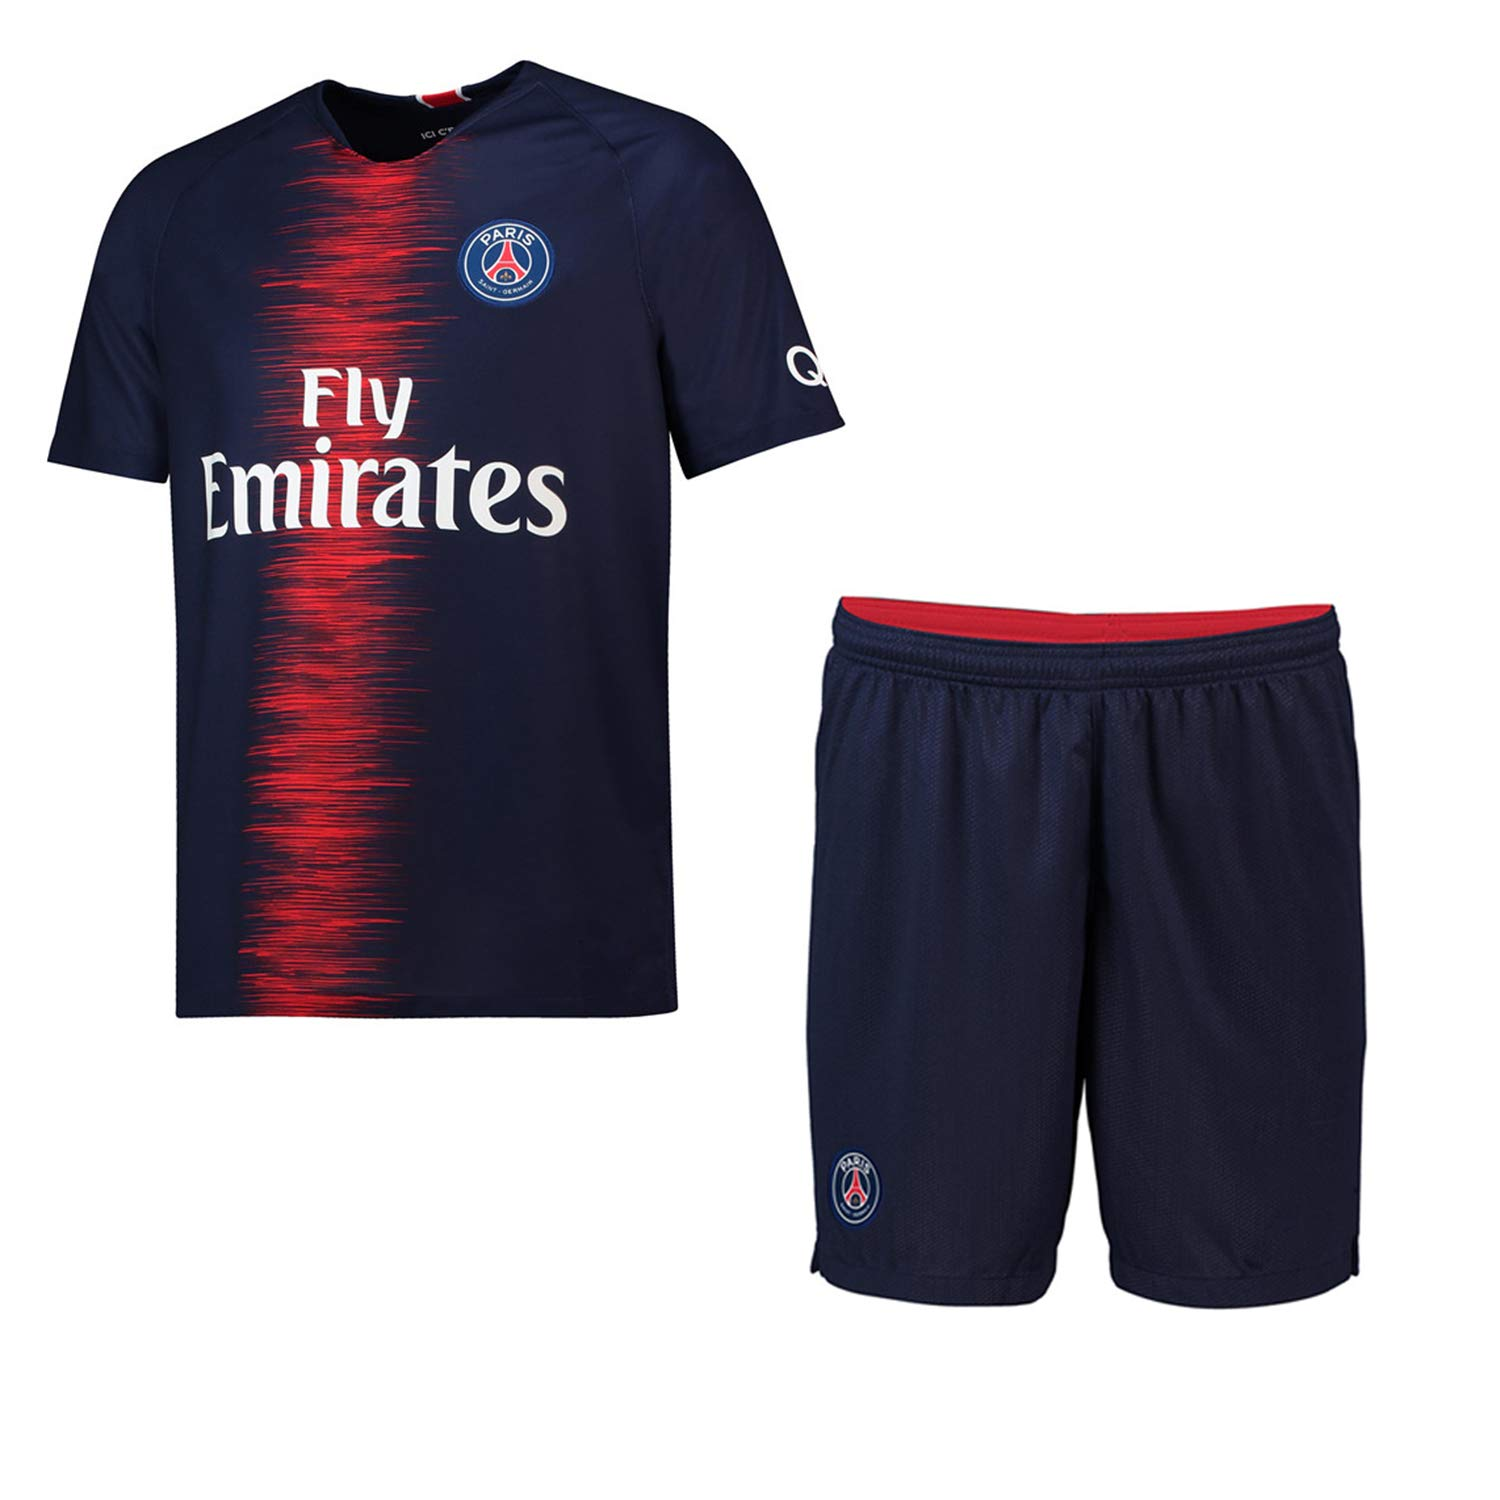 f965319b2 Panicy 2018-2019 Personalised Arsenal Home Football Shirt Custom Soccer  Jersey Personalised with Team Name larger image